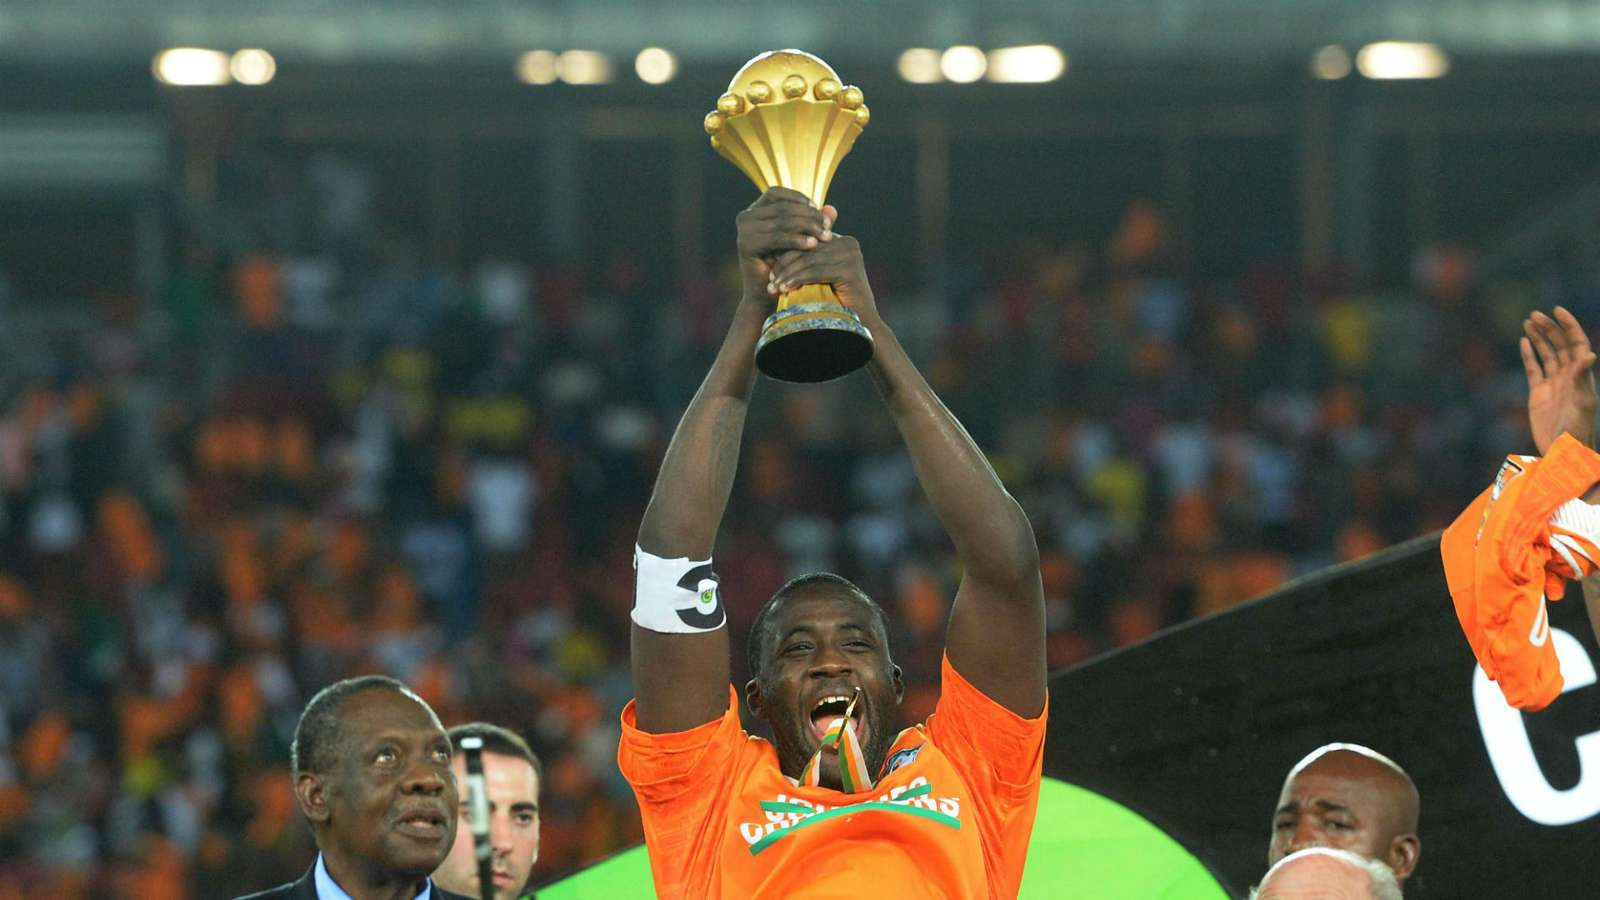 Ivory Coast accept to host Afcon 2023 instead of 2021 tournament